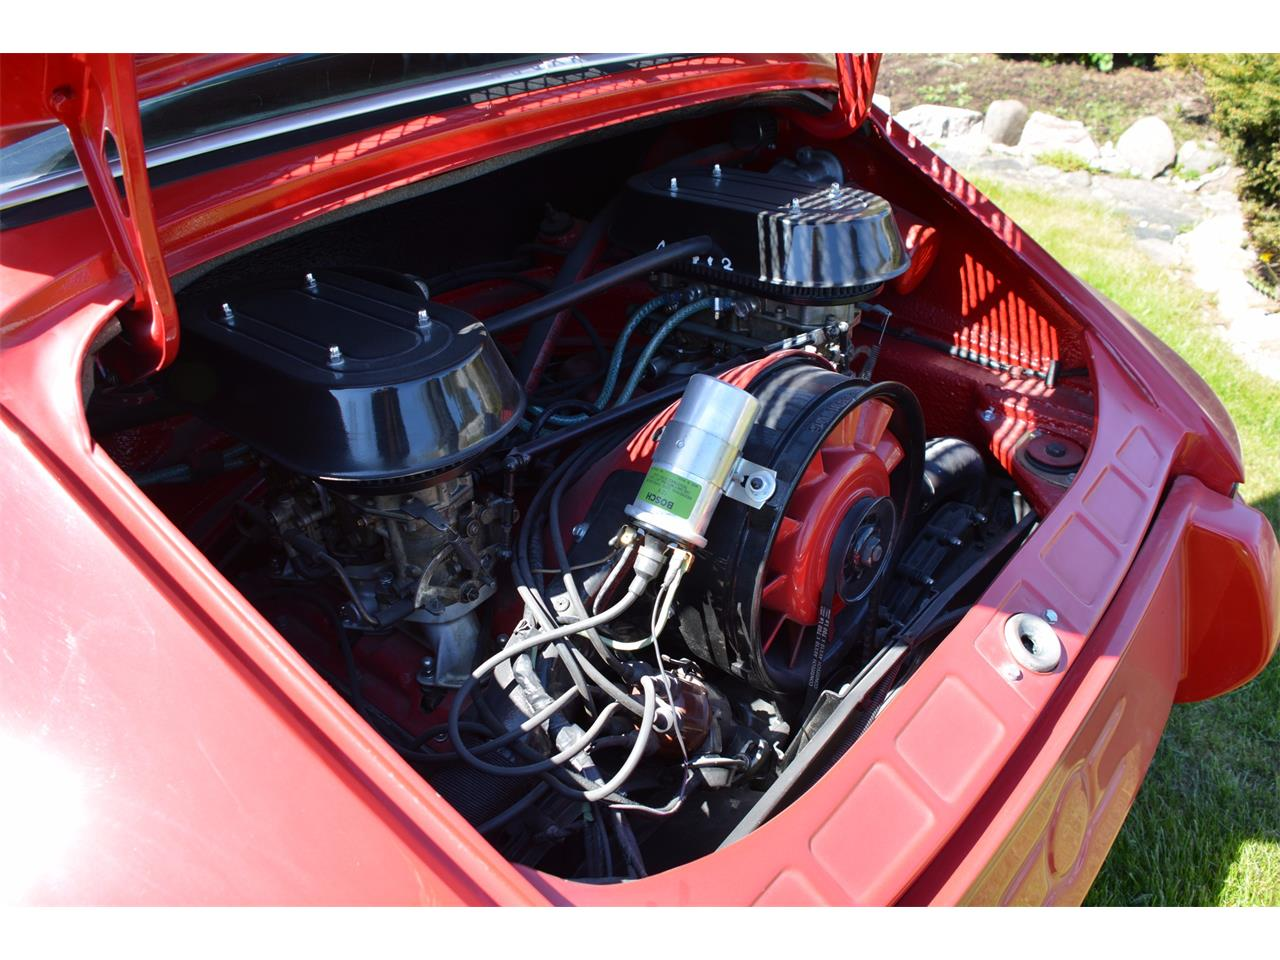 Large Picture of Classic '72 Porsche 911T located in Mazeikiai Lithuania - $73,000.00 Offered by a Private Seller - KNJC